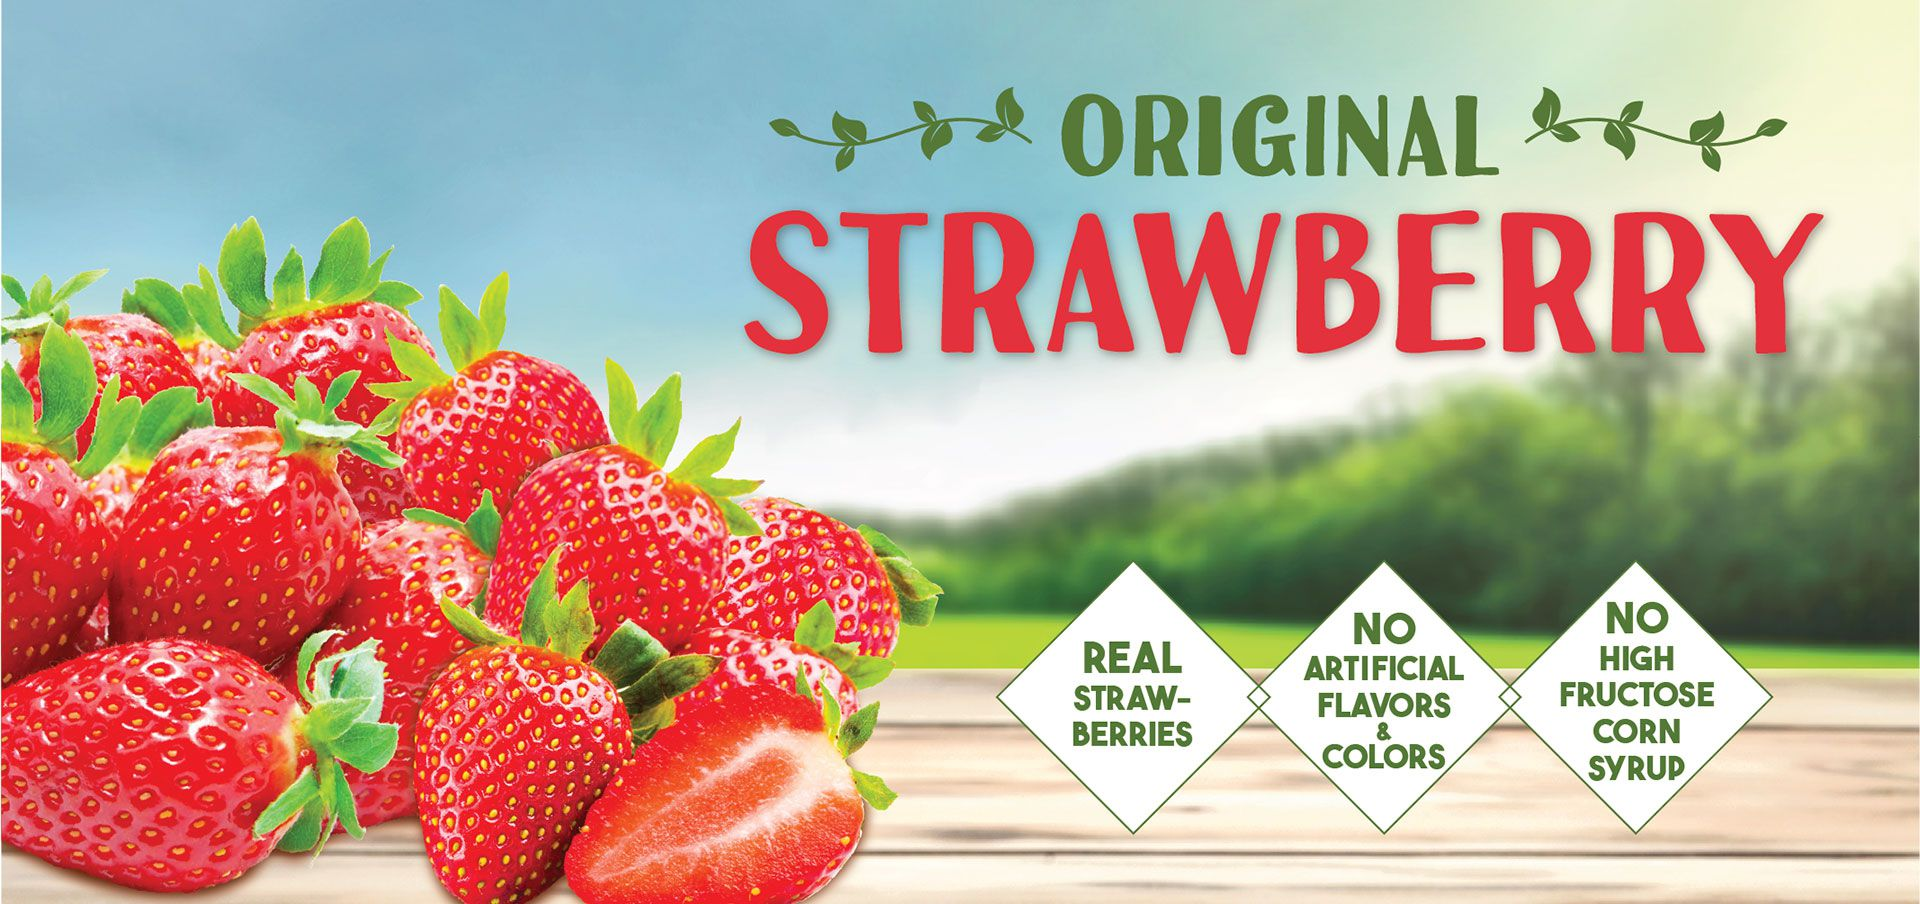 original strawberry label image